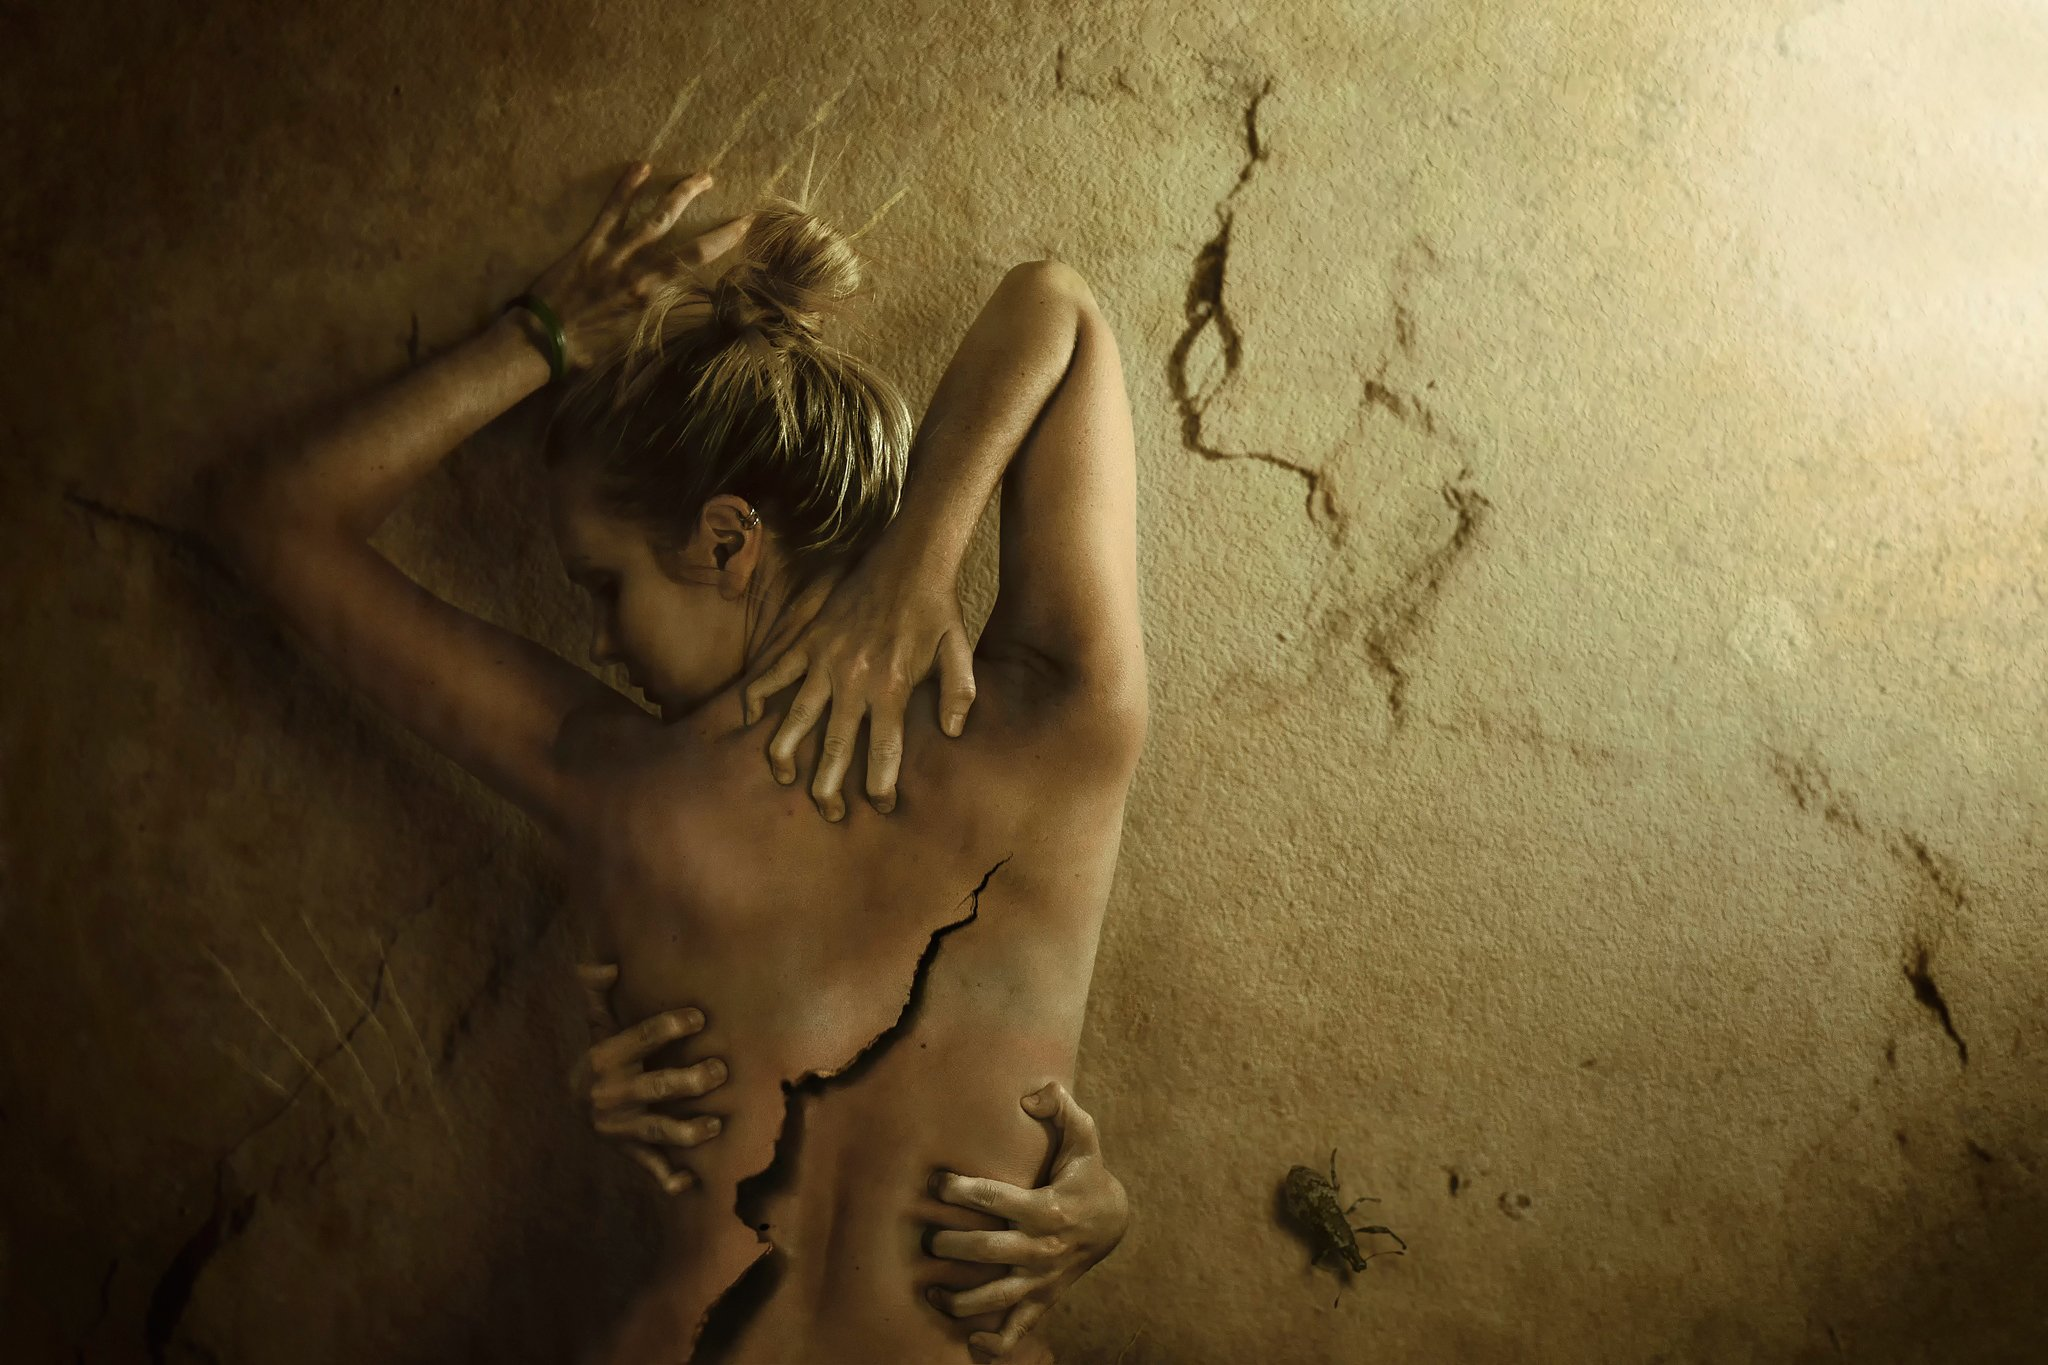 Pain-wall-cracks-girl-back-love-horror-dark-mood-sad-gothic-emo-wallpaper